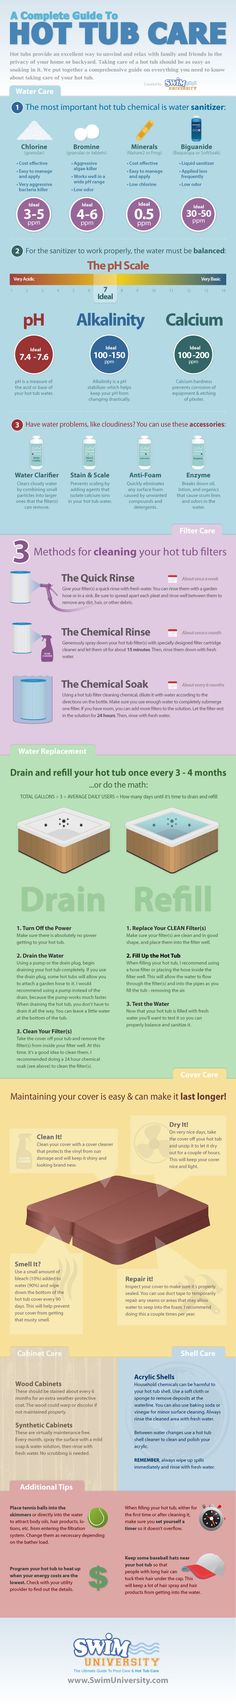 A Complete Guide to Hot Tub Care Infographic - Swim University